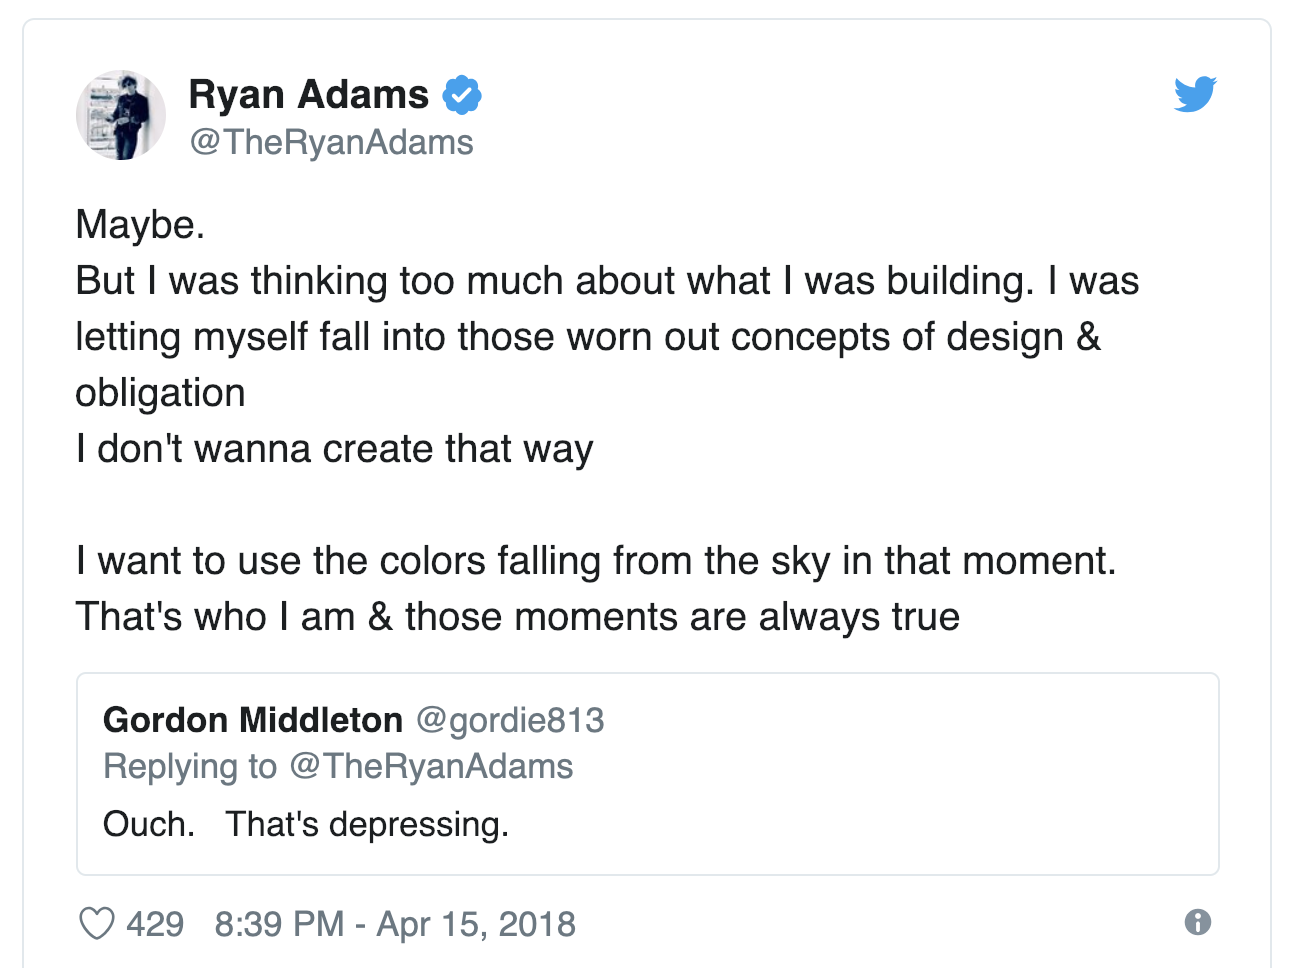 Ryan Adams first tweets about the album Big Colors